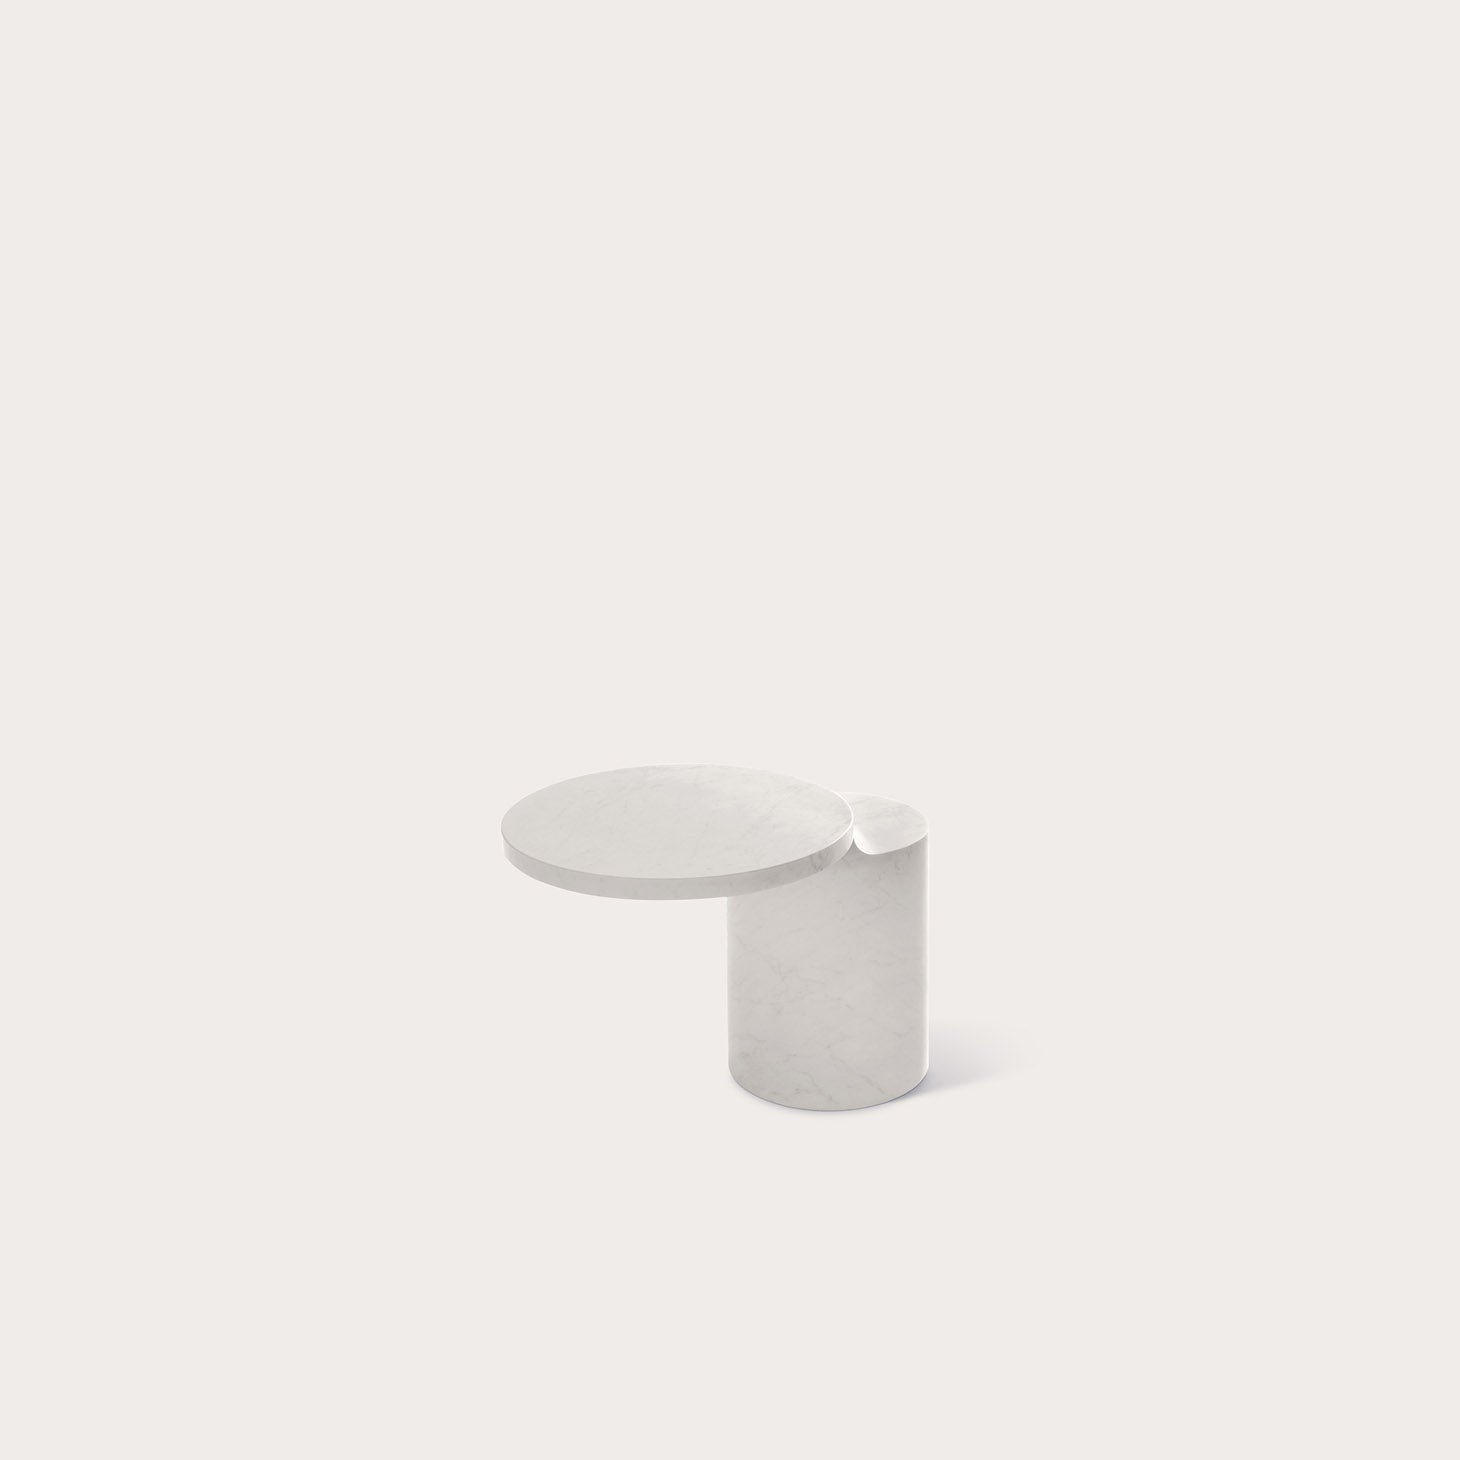 Taksim Tables Konstantin Grcic Designer Furniture Sku: 625-230-10060